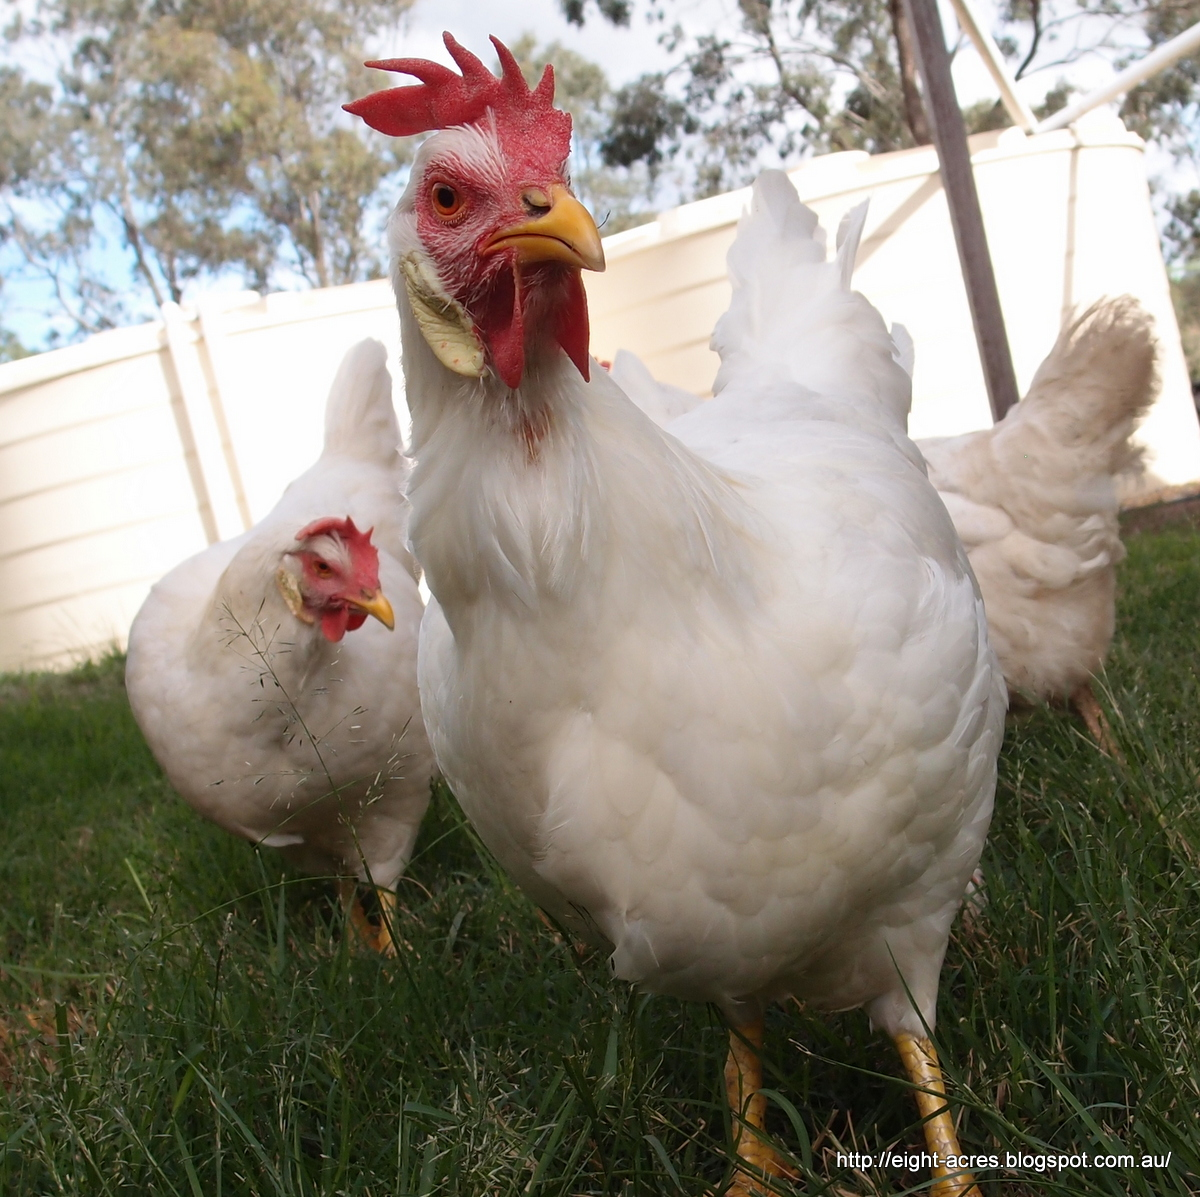 eight acres: raising chickens for meat